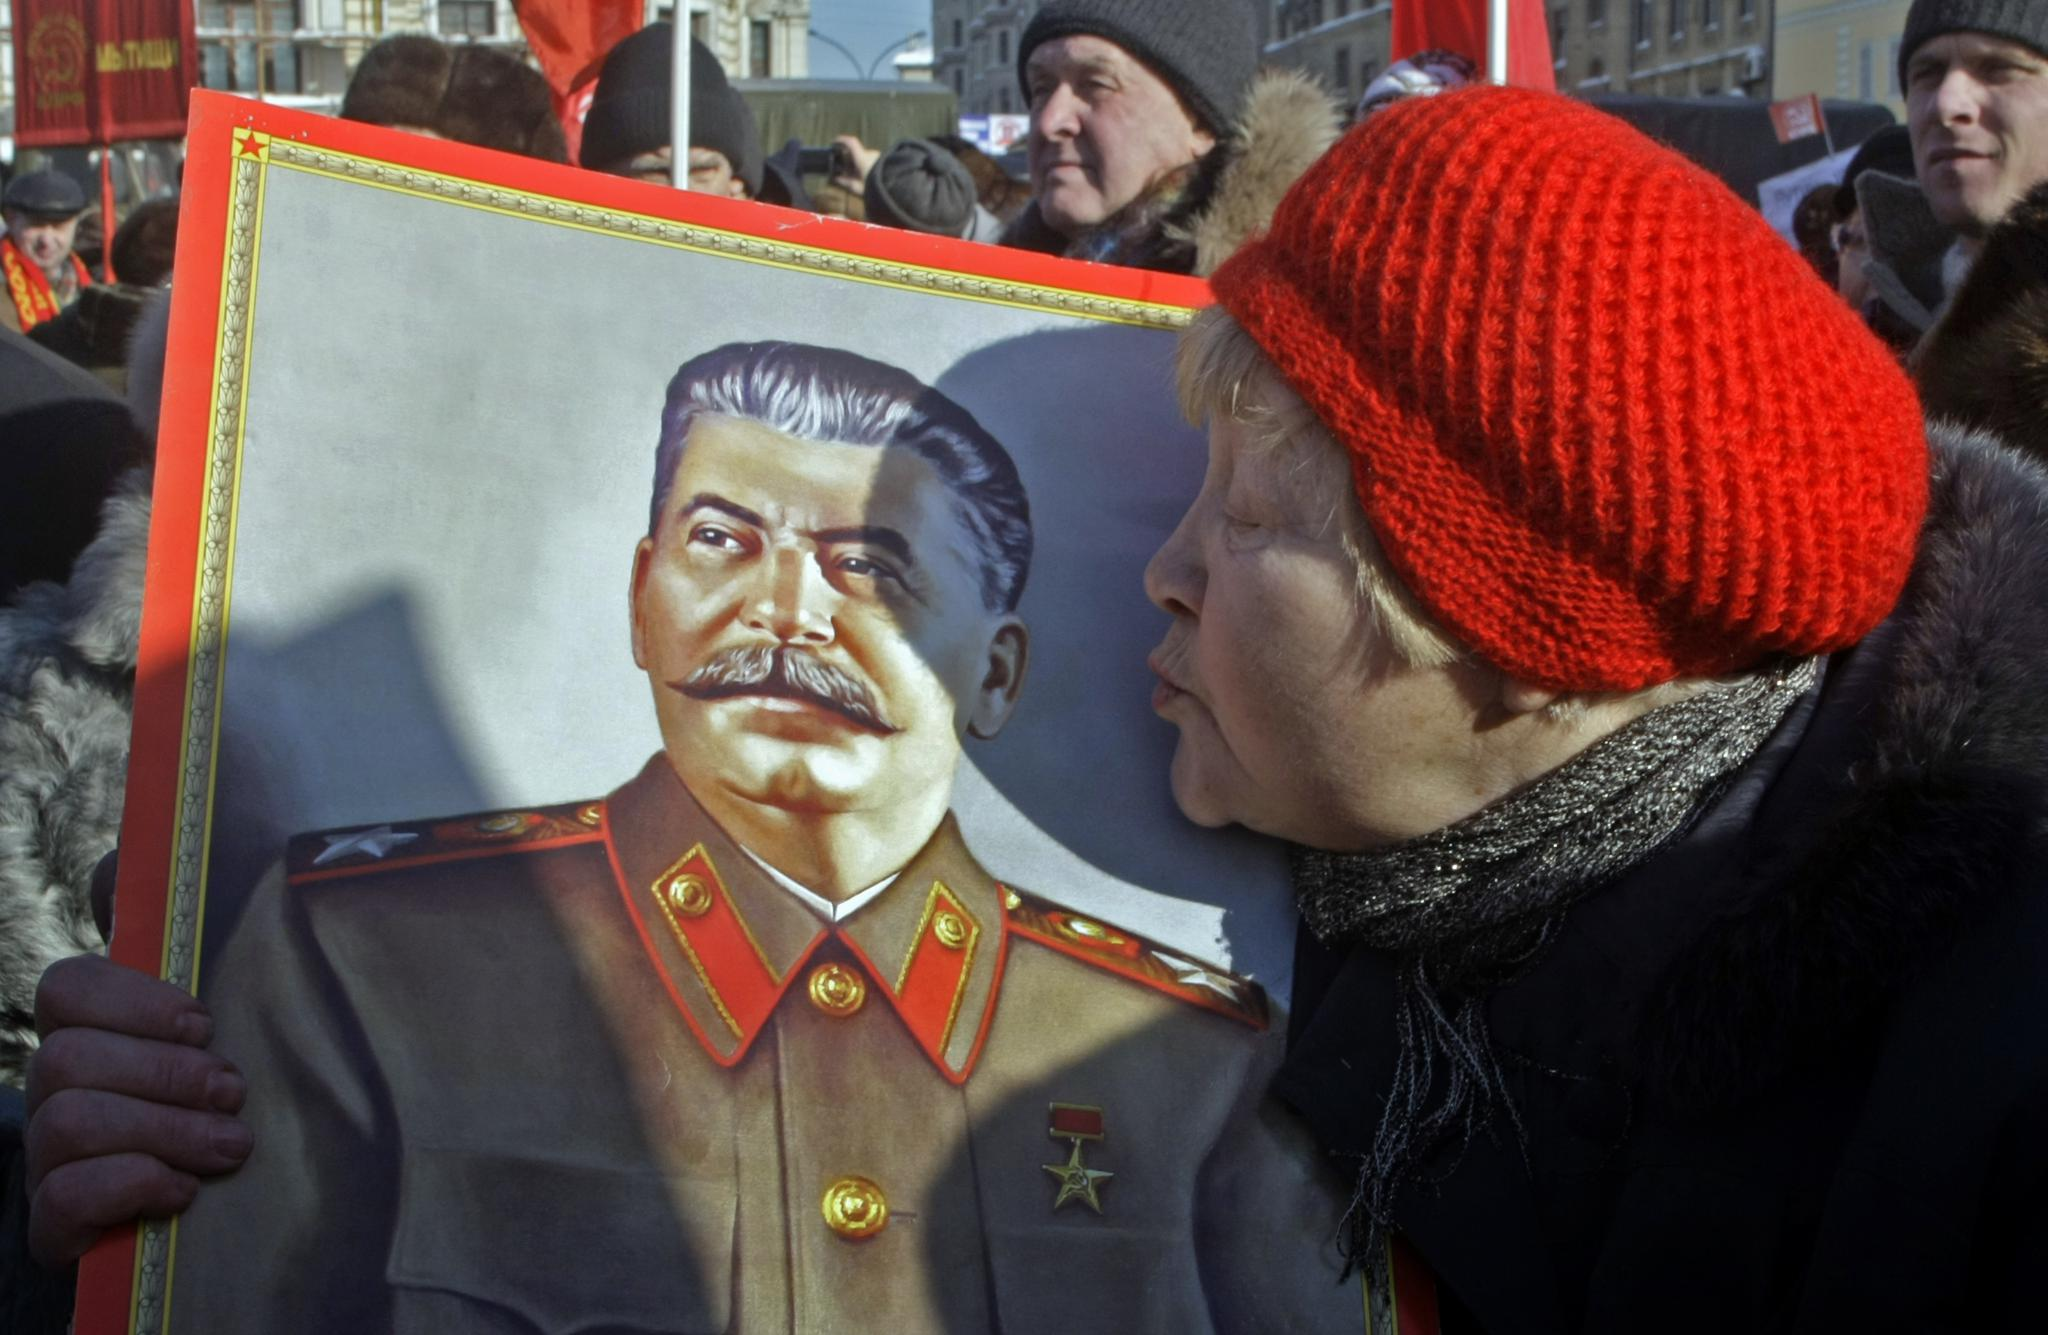 Under Vladimir Putin, Russia has seen a ressurgance in affection for the dictator Josef Stalin who was responsible for the death of millions during World War II.